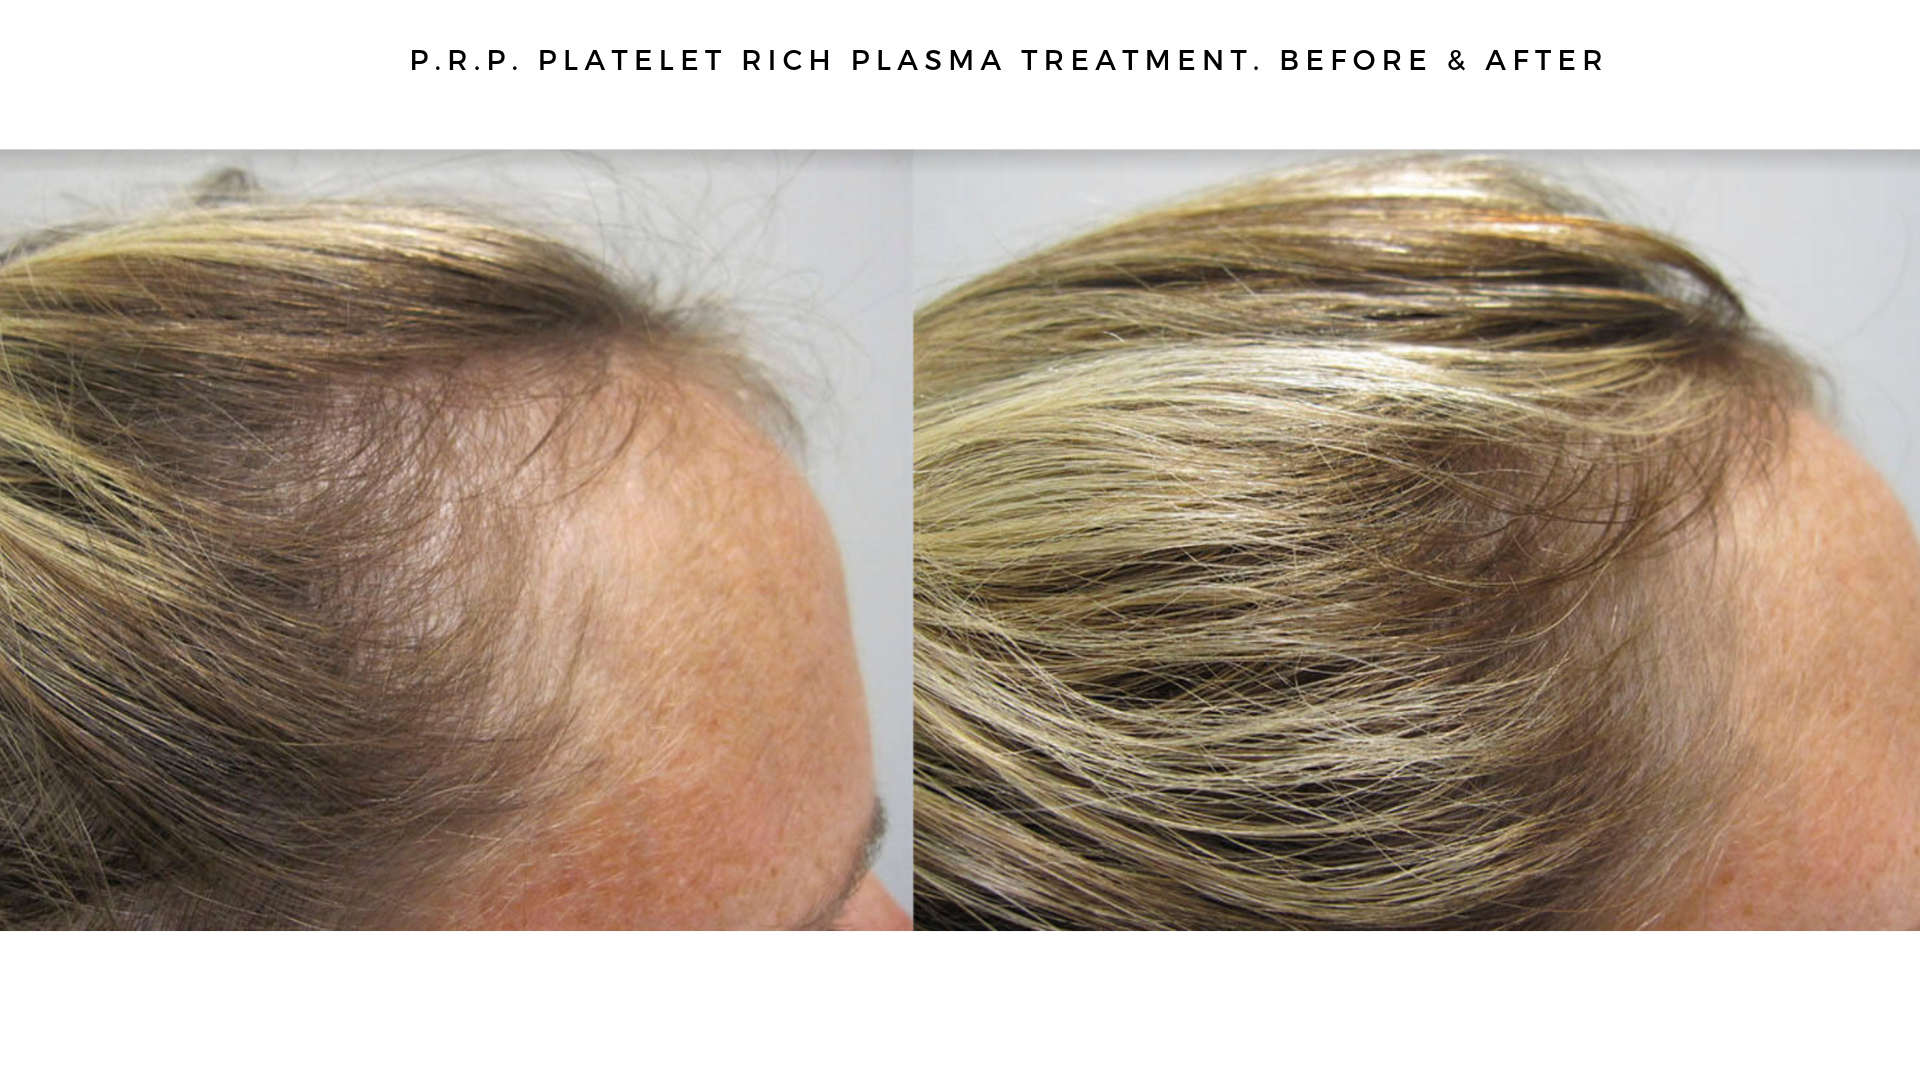 PRP and Microneedling Before & After (4.5 Months)